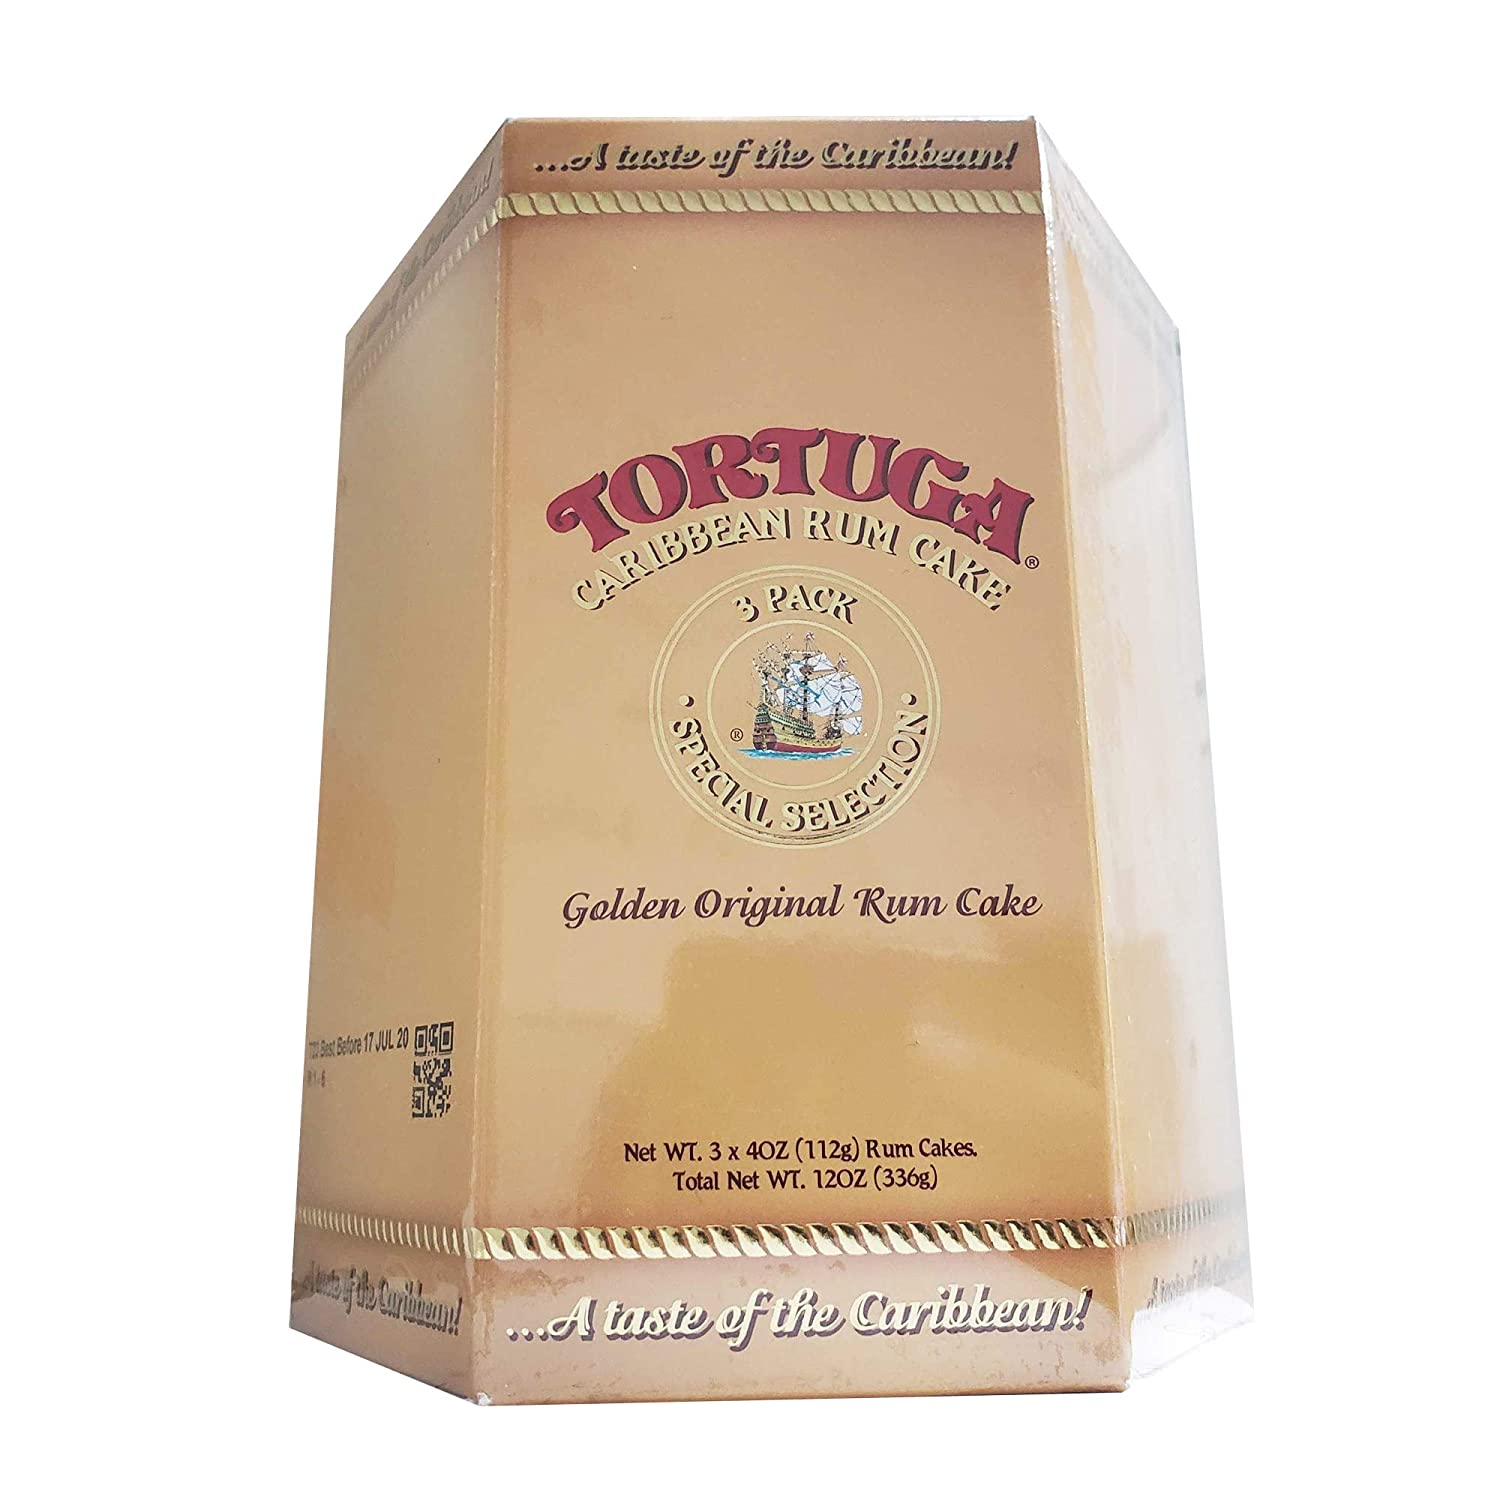 TORTUGA Caribbean Original Rum Cake with Walnuts - 4 oz. 3 Pack - The Perfect Premium Gourmet Gift for Stocking Stuffers, Gift Baskets, and Christmas Gifts - Great Cakes for Delivery